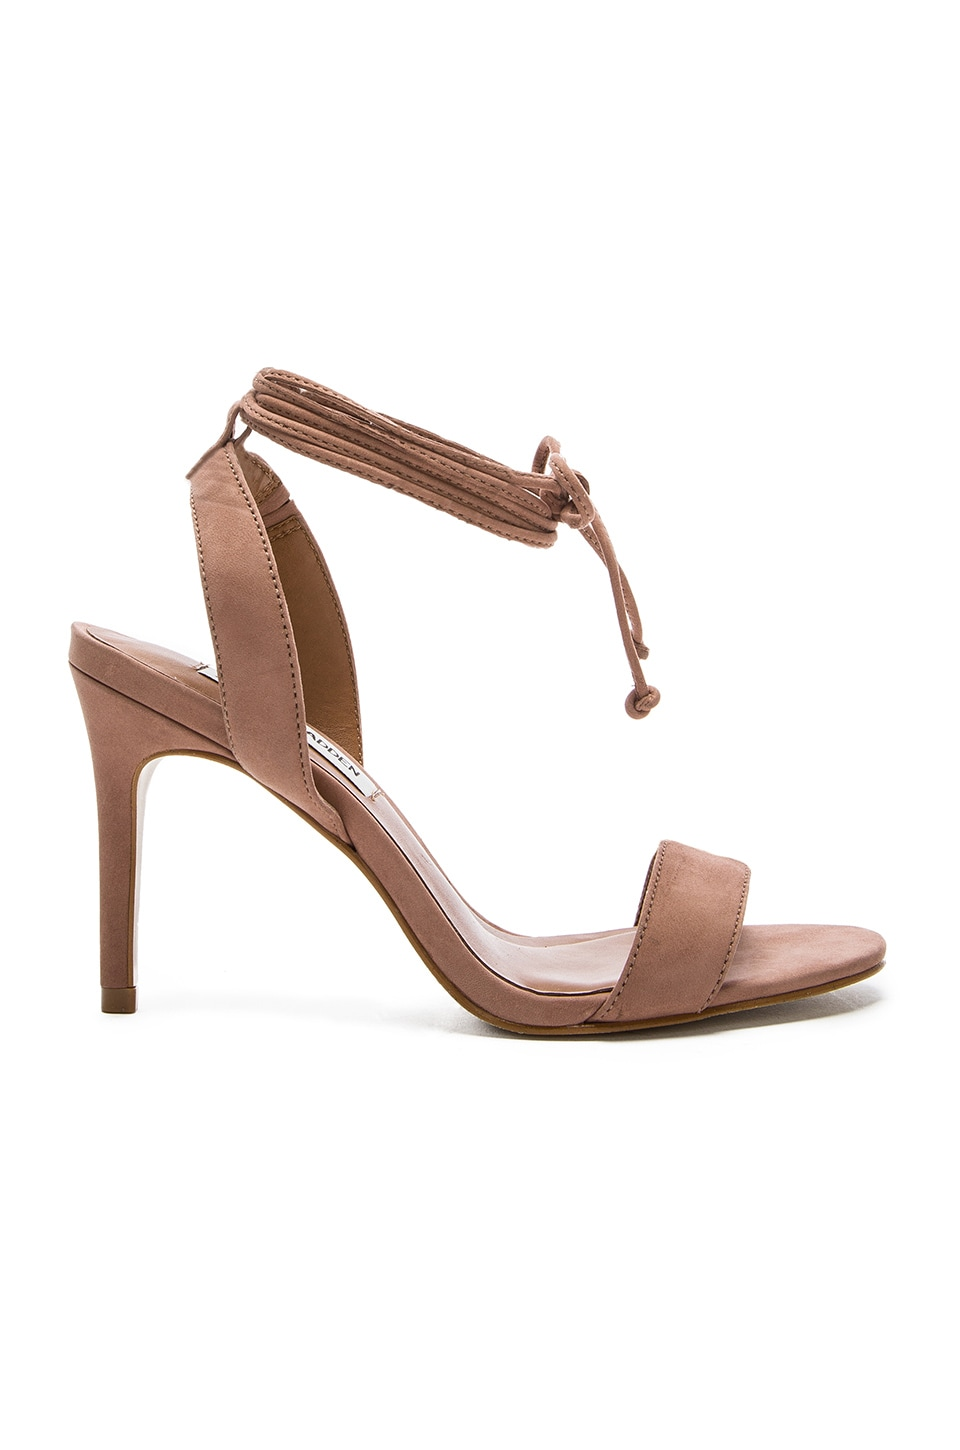 Steve Madden Natlia Heel in Dusty Rose